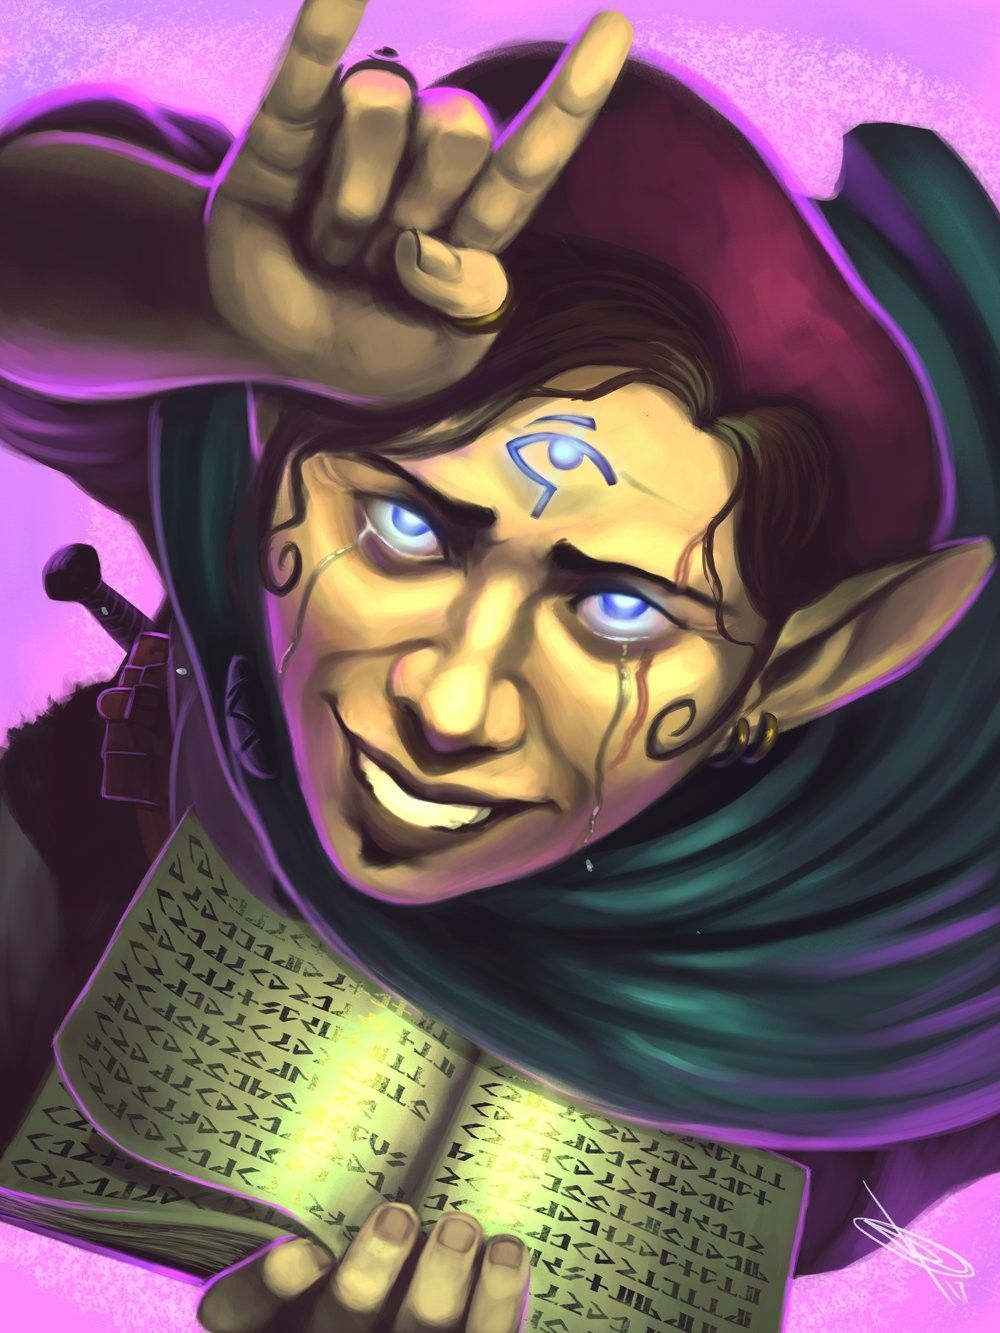 Pin On Critical Role Vox Machina Want to discover art related to scanlan_shorthalt? pinterest